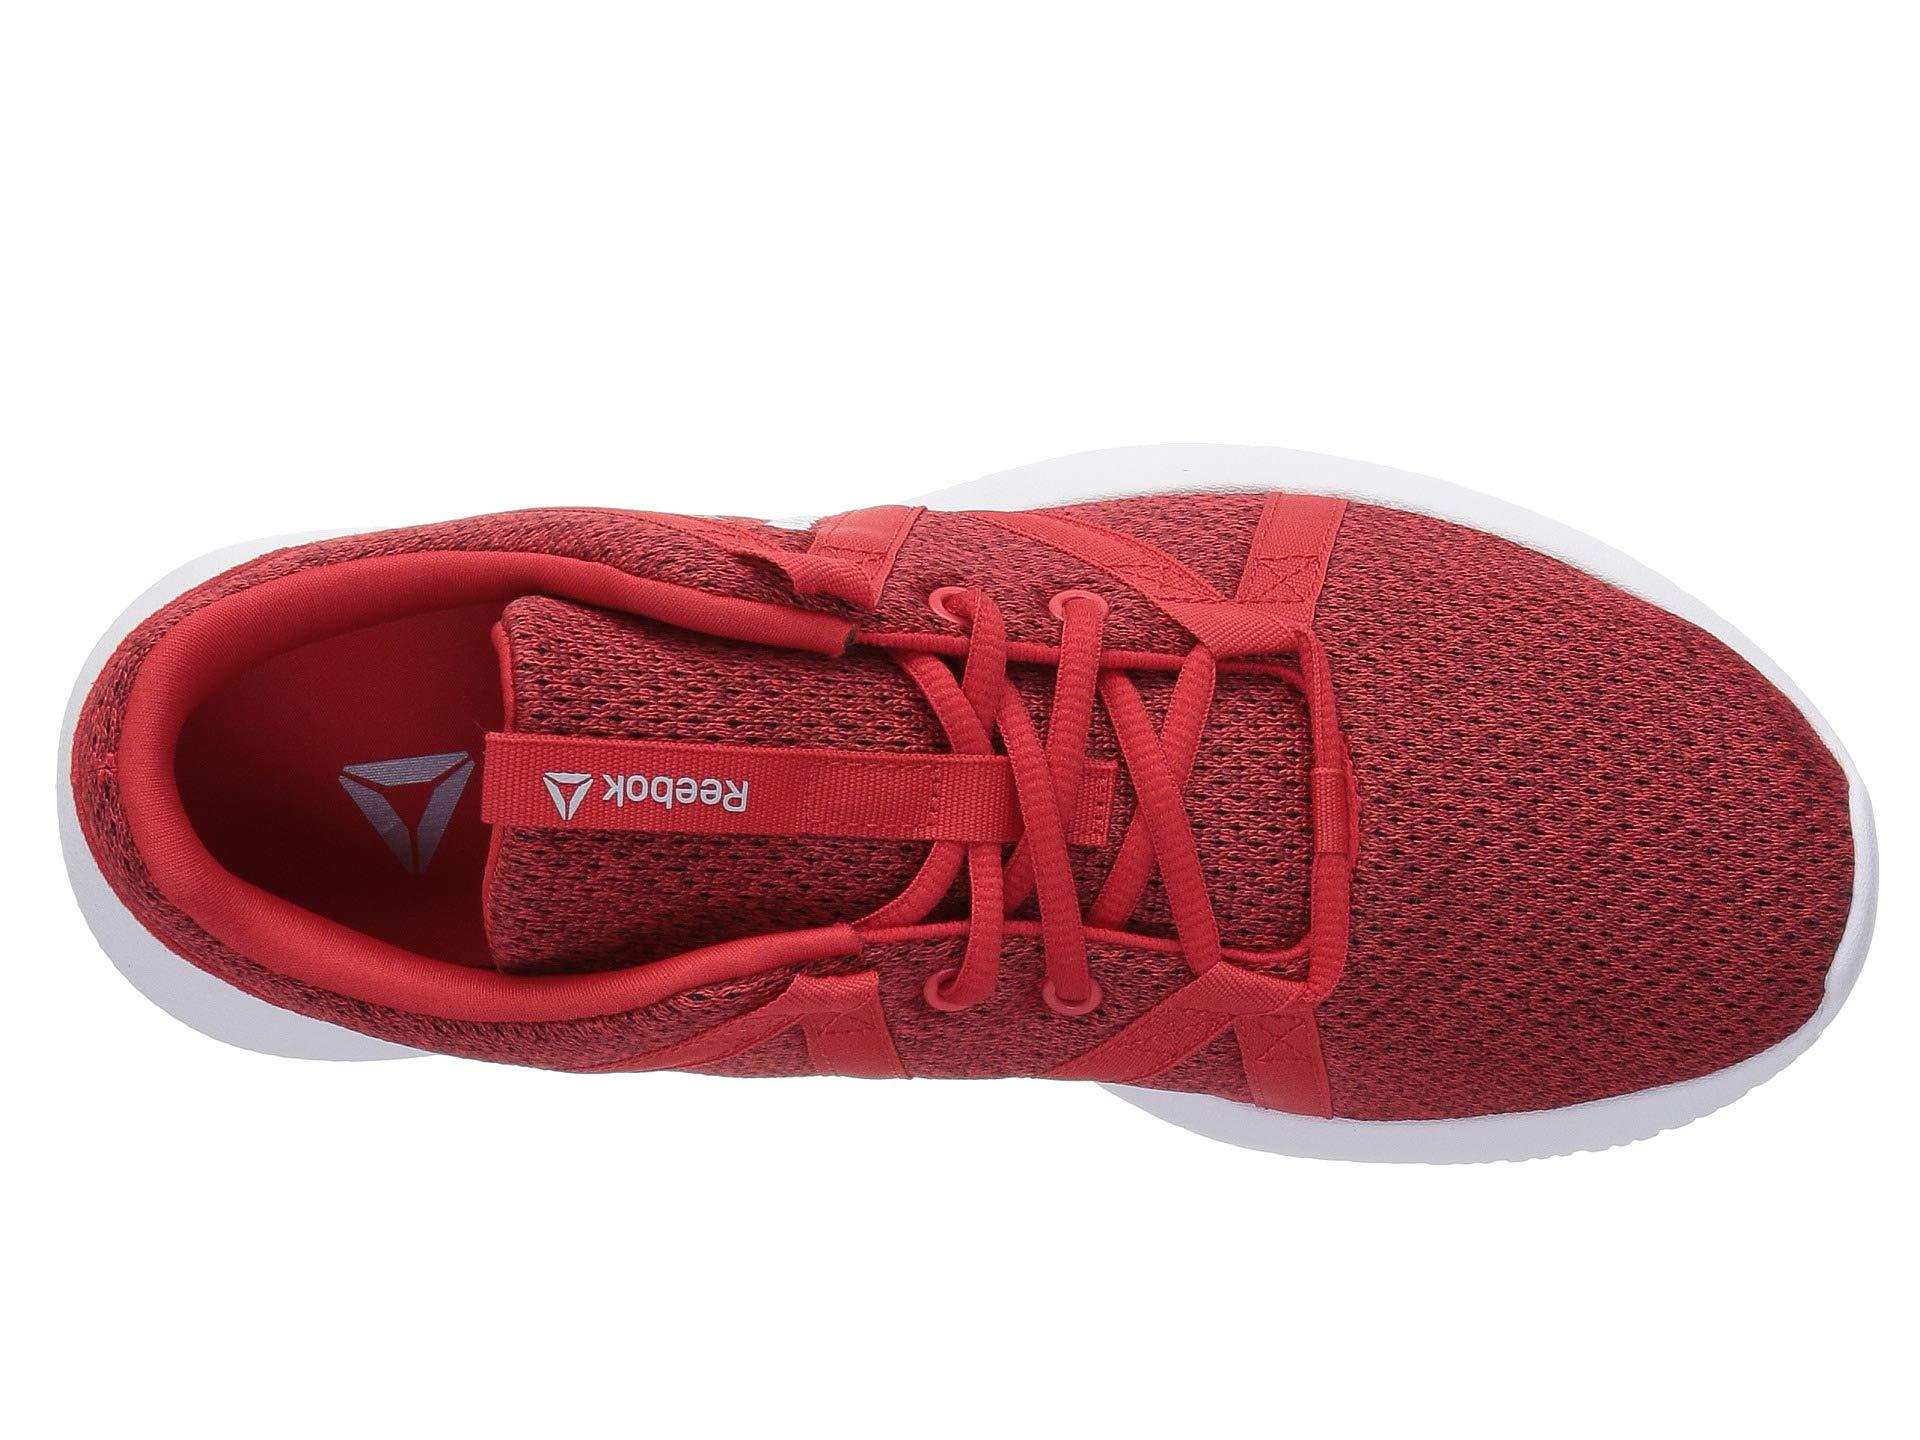 1c786e8e3656 Reebok - Red Reago Essential for Men - Lyst. View fullscreen